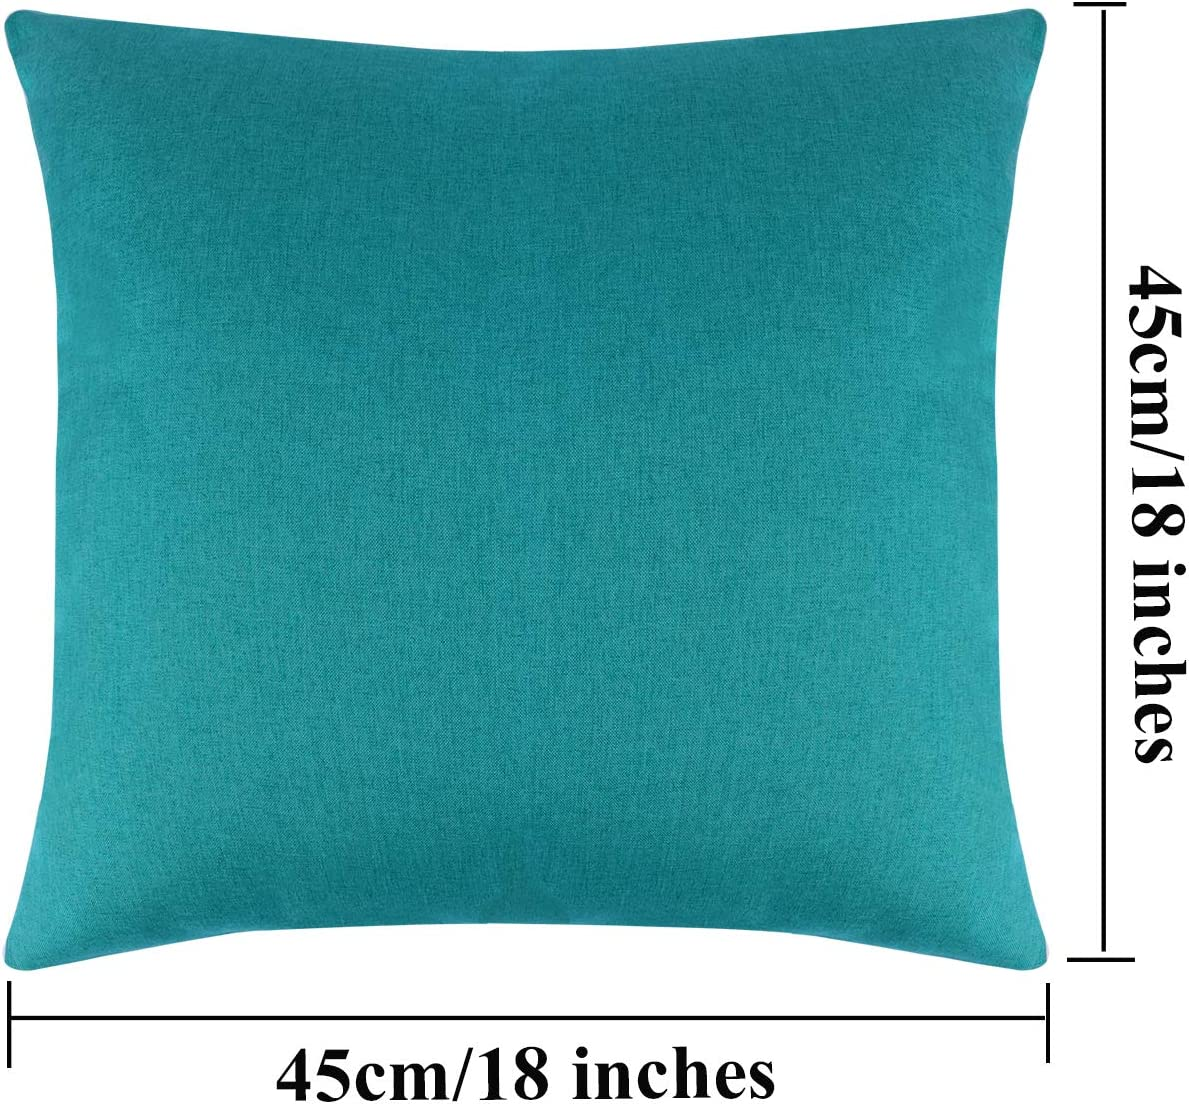 Balcony and Sofa Aneco Pack of 6 Decorative Outdoor Waterproof Throw Pillow Covers Square Patio Cushion Cases Garden Pillowcases for Patio Red Tent Couch 18 x 18 Inches